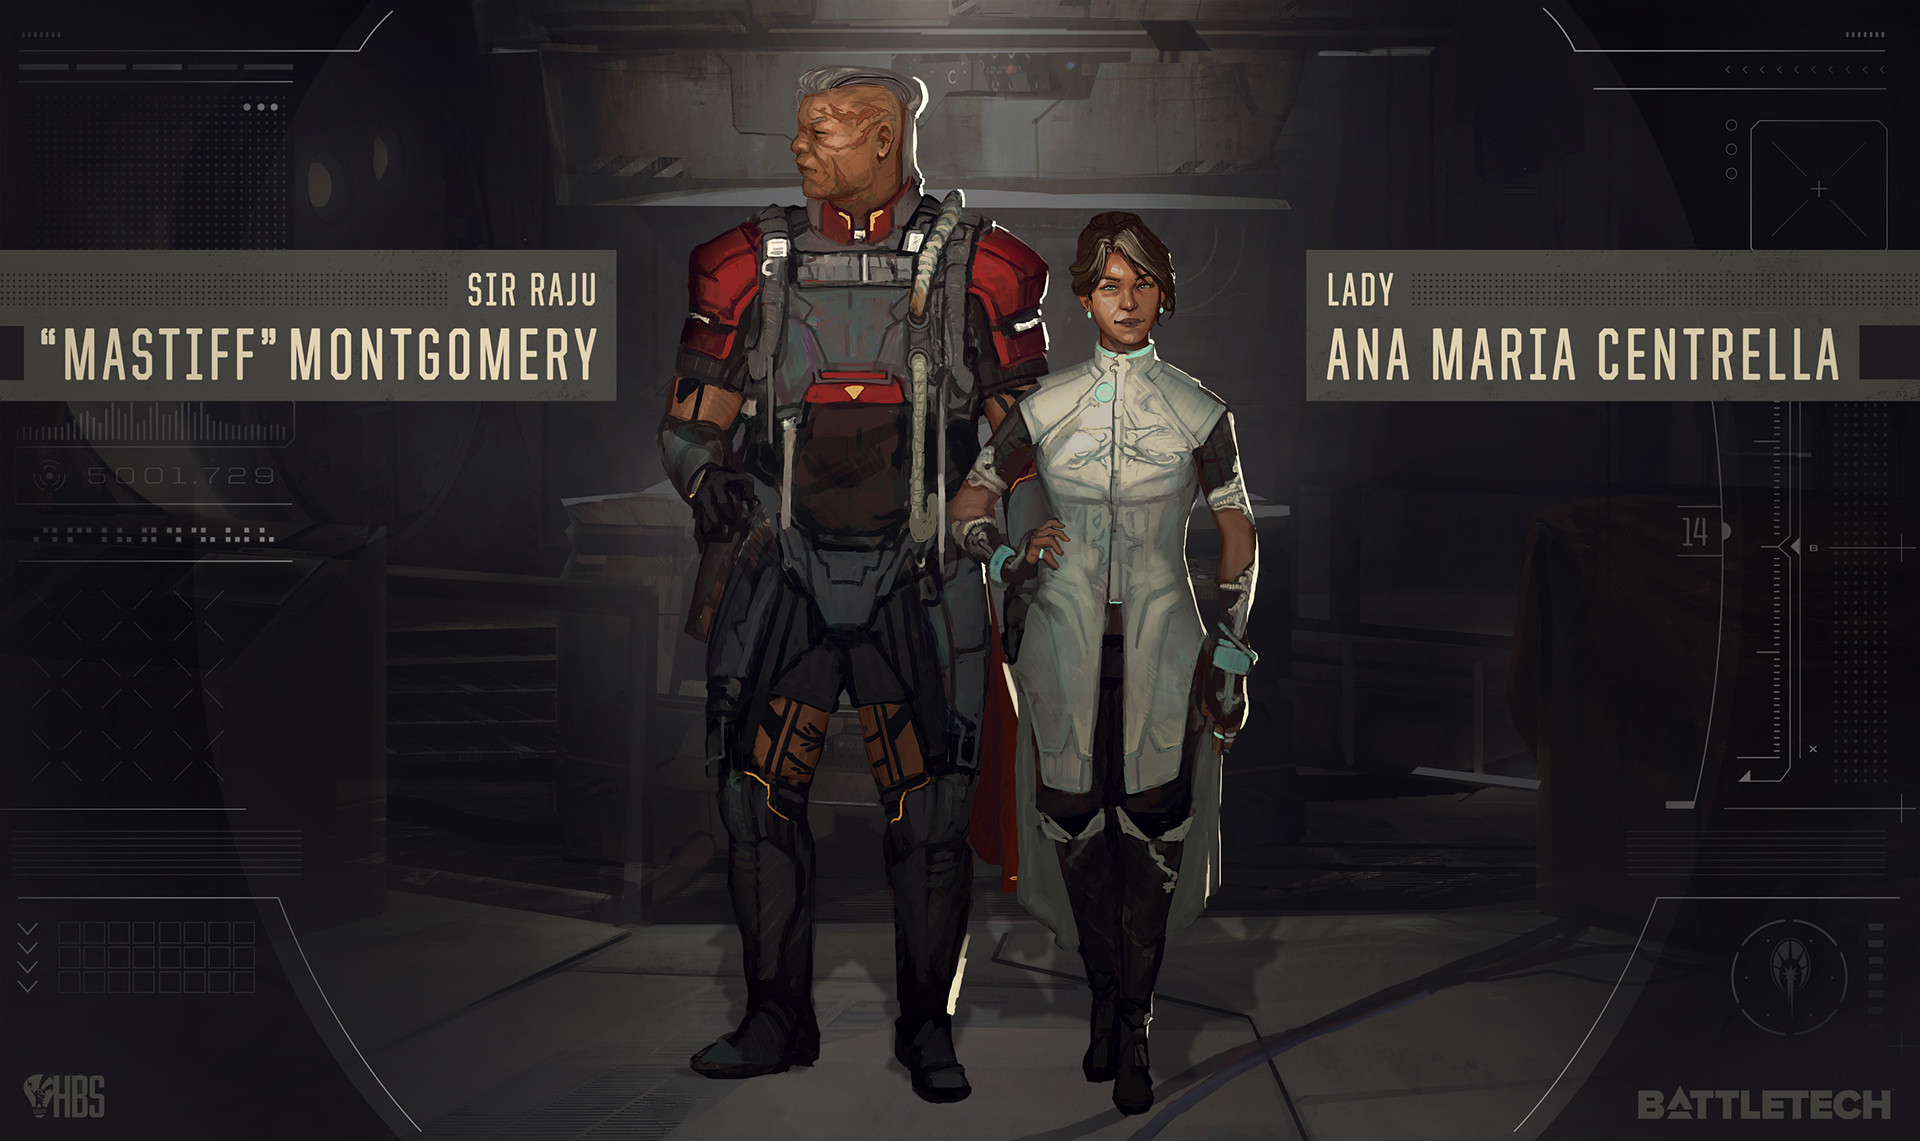 A veteran and an emissary.